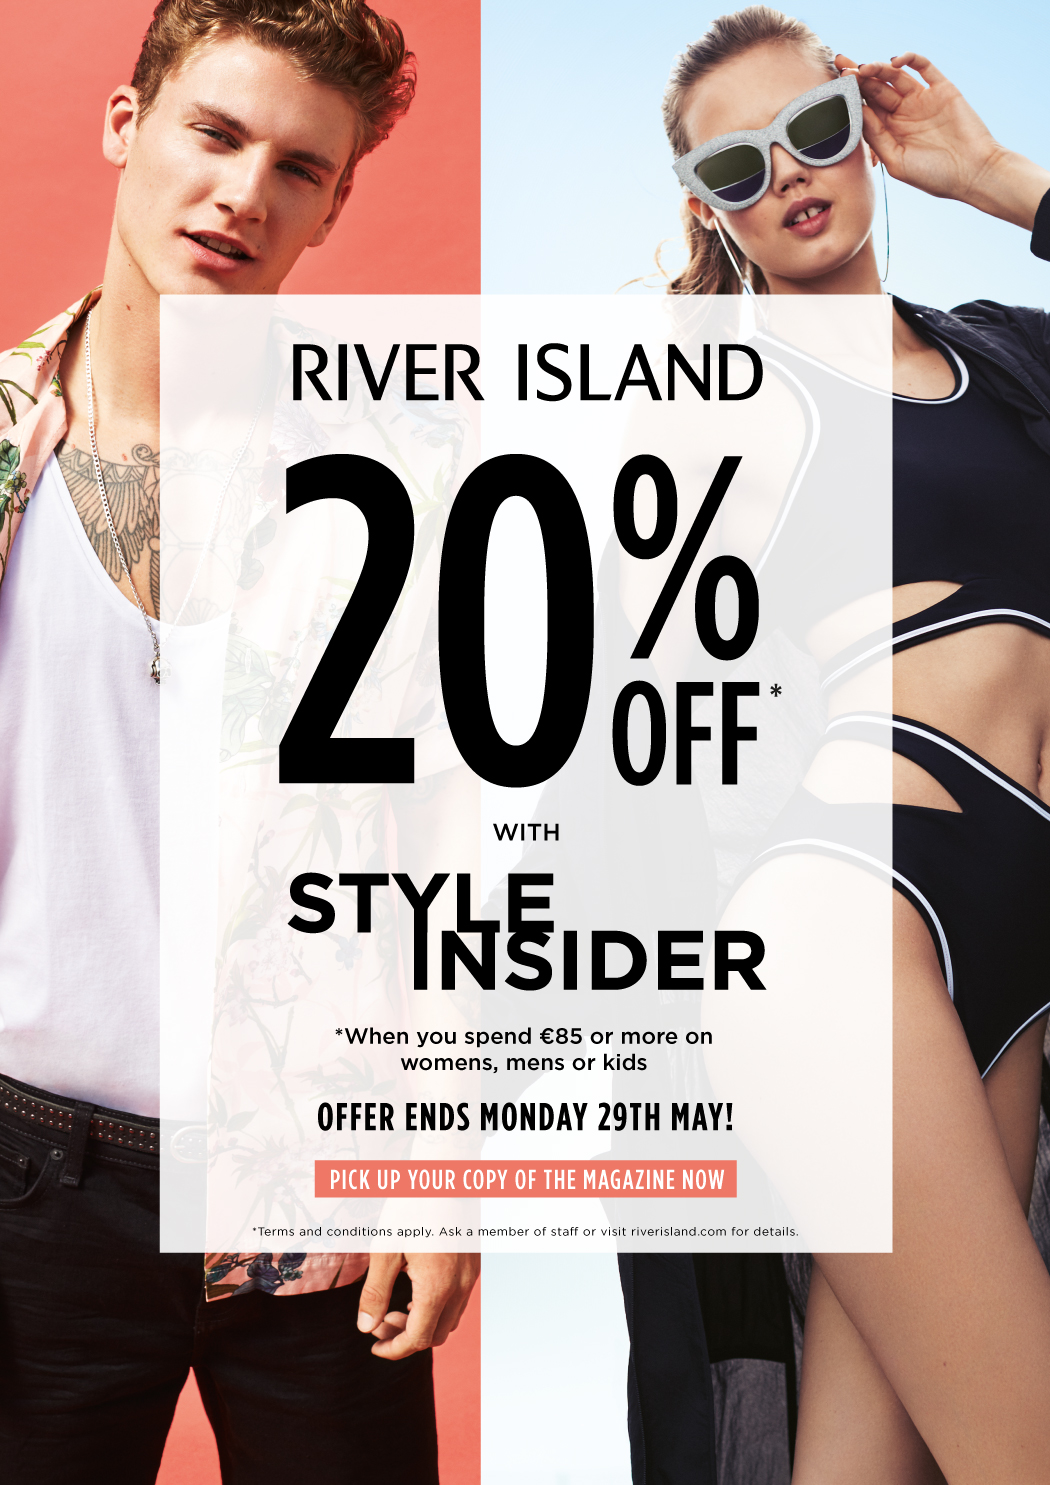 20% off at River Island With Style Insider